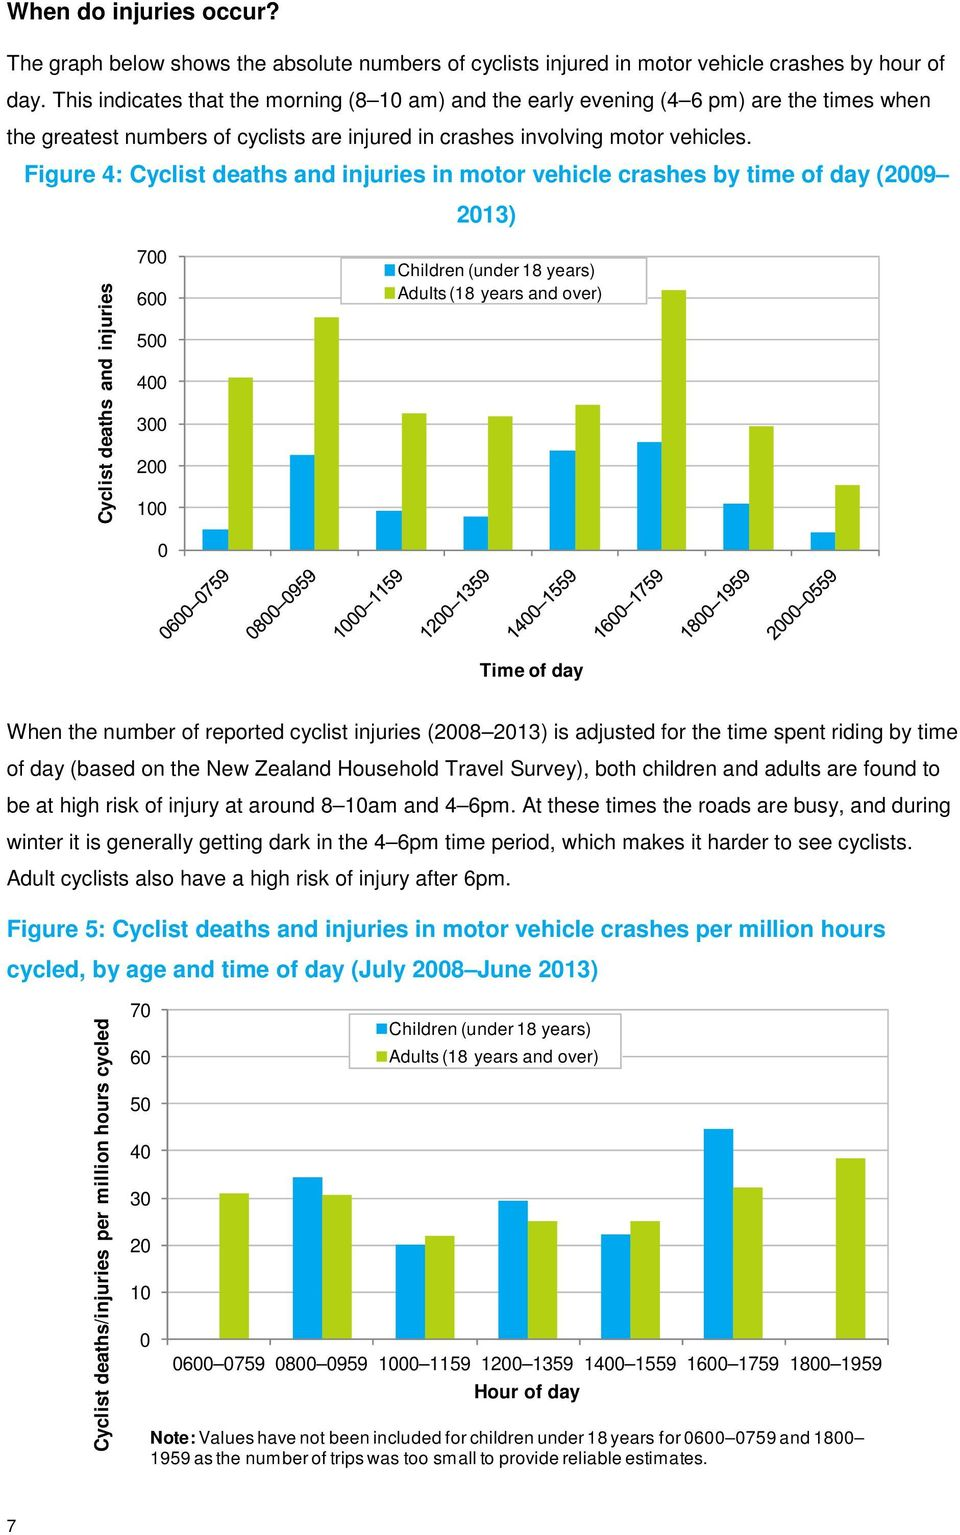 Figure 4: Cyclist deaths and injuries in motor vehicle crashes by time of day (2009 2013) Cyclist deaths and injuries 700 600 500 400 300 200 100 0 Children (under 18 years) Adults (18 years and